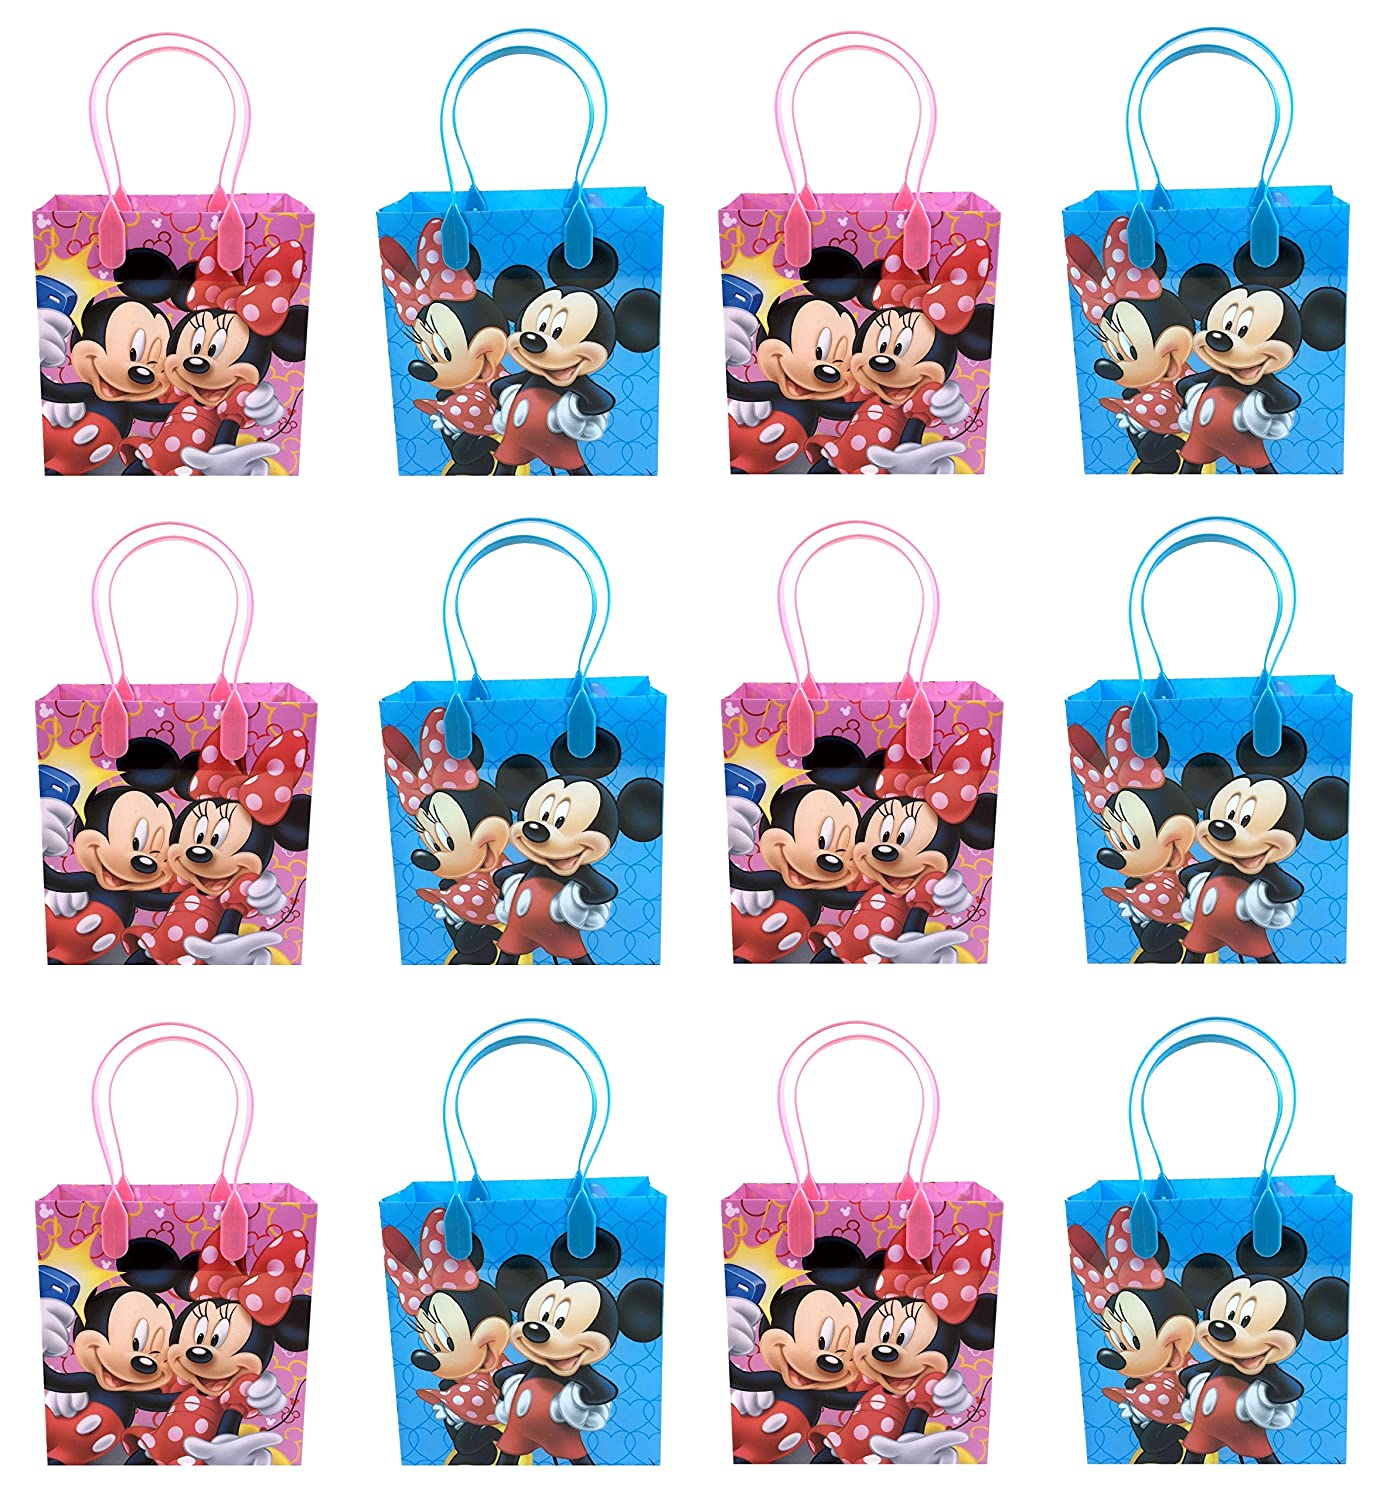 48PC DISNEY MICKEY MINNIE MOUSE GOODIE BAGS PARTY FAVOR BAGS GIFT BAGS